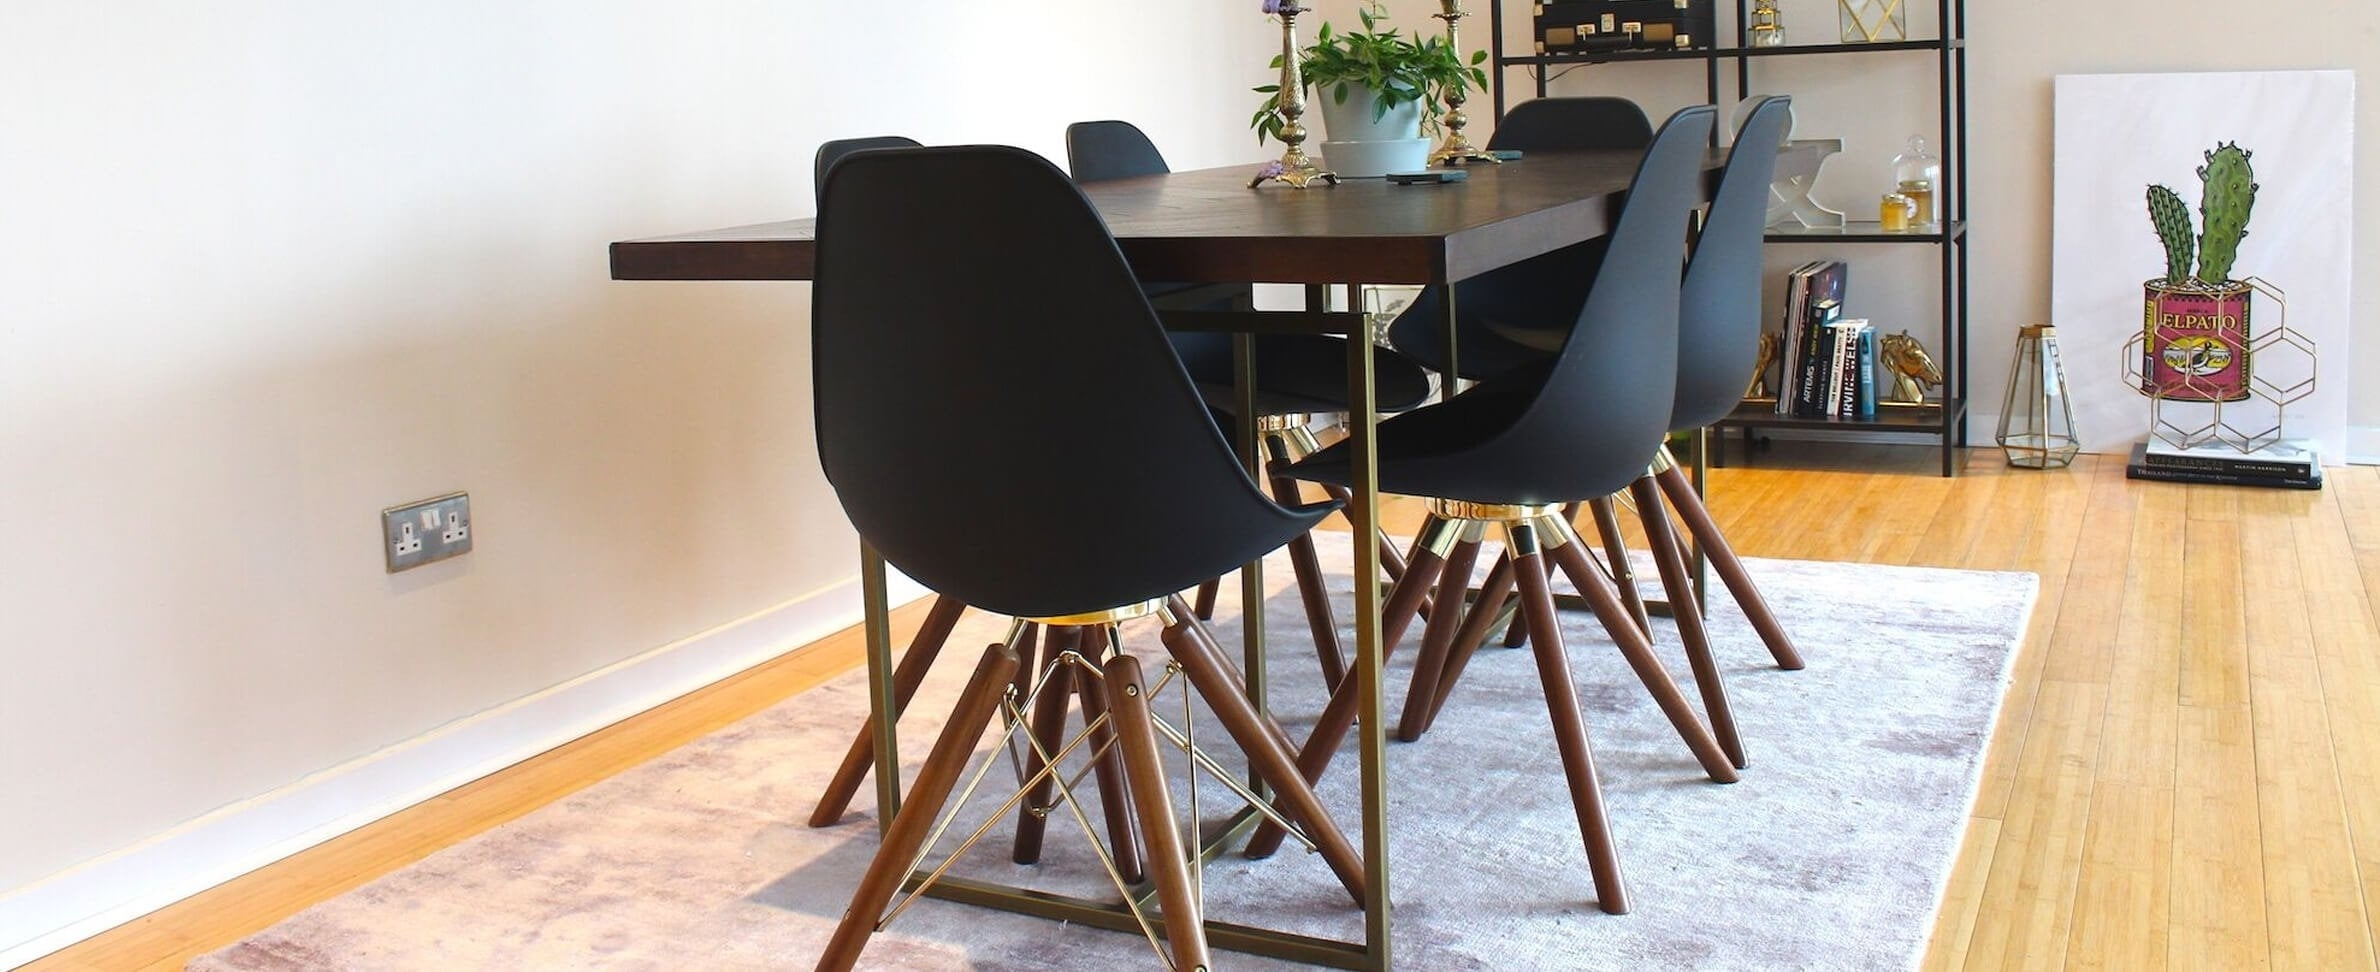 Inspiration about Dining Chairs, Stools & Tables (#7 of 20)